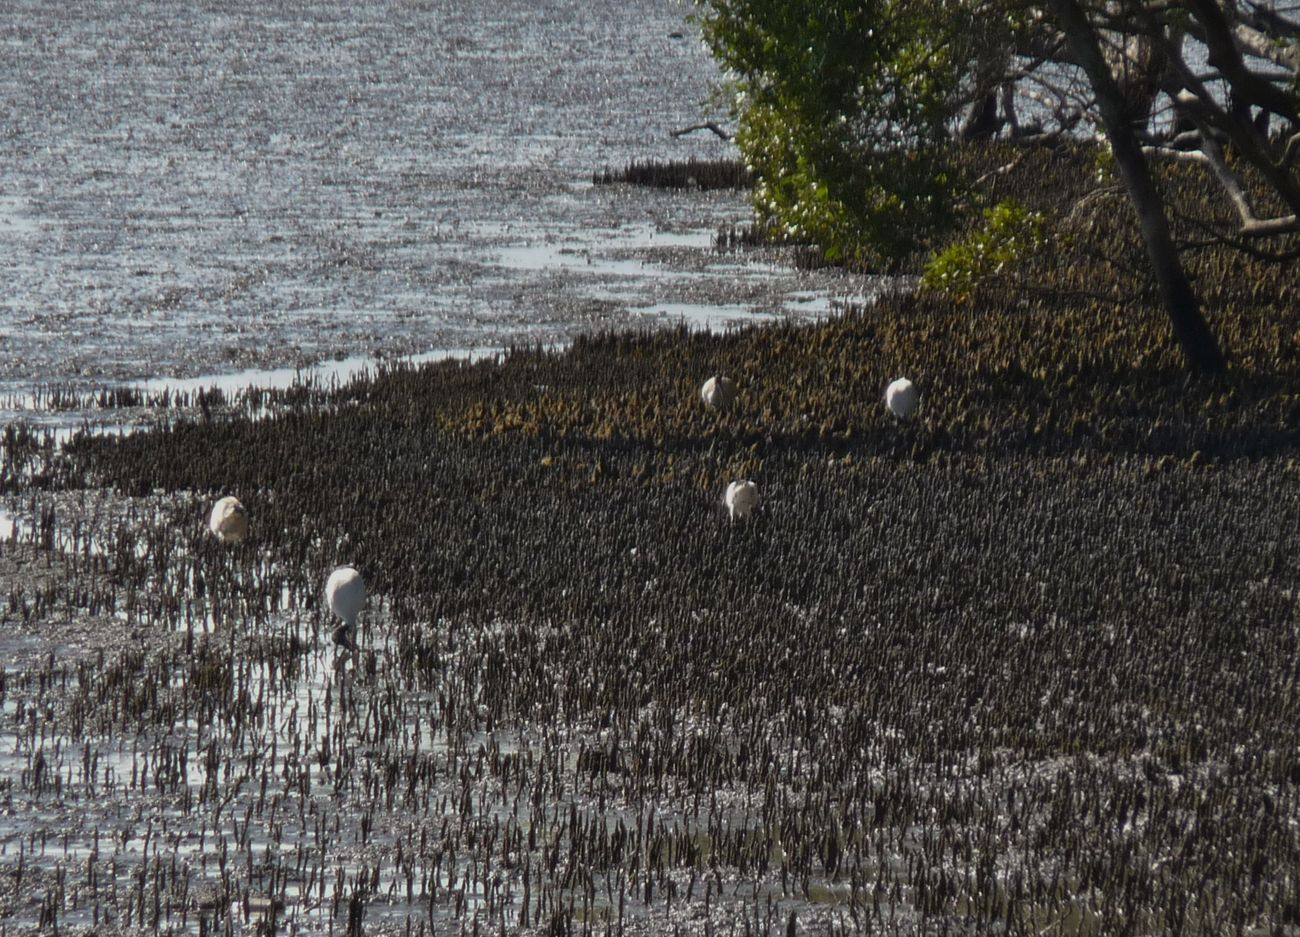 Australia Bird Birds Looking For Food Deception Bay Waters Great Atmosphere Low Tight Nature No People Wetland Wildlife